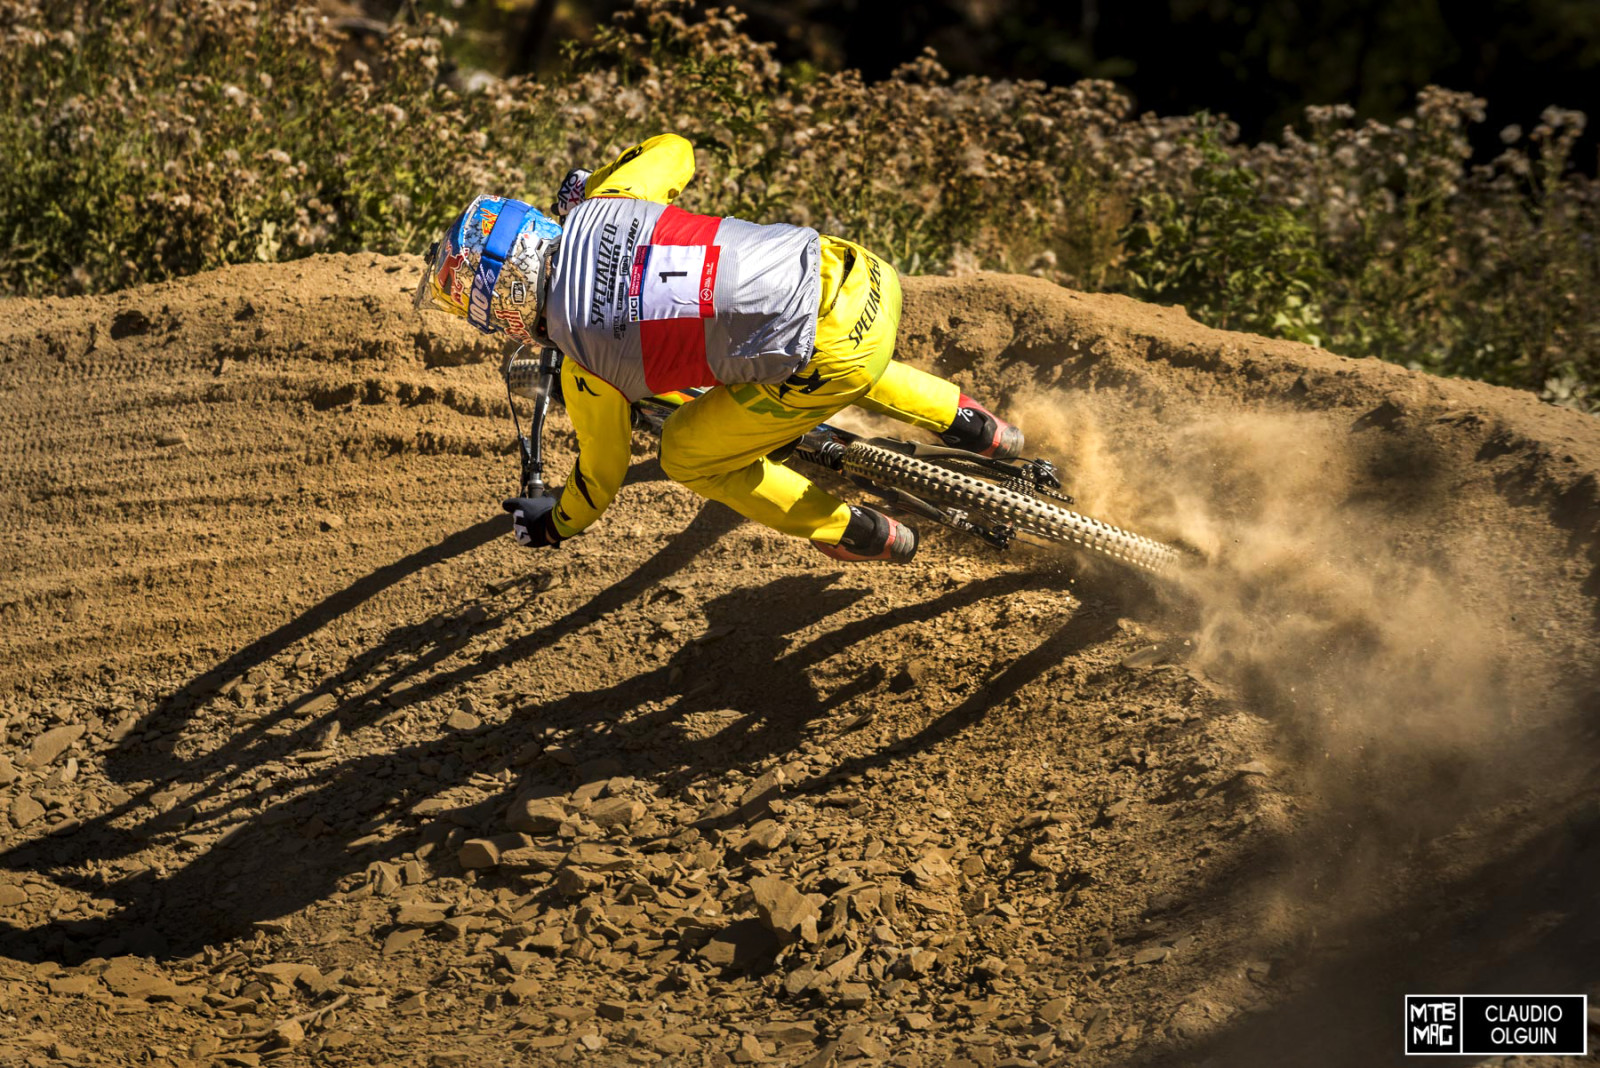 Just about 9 seconds up on everyone else. If he stays the course, Finn Iles will likely be the future of World Cup DH.